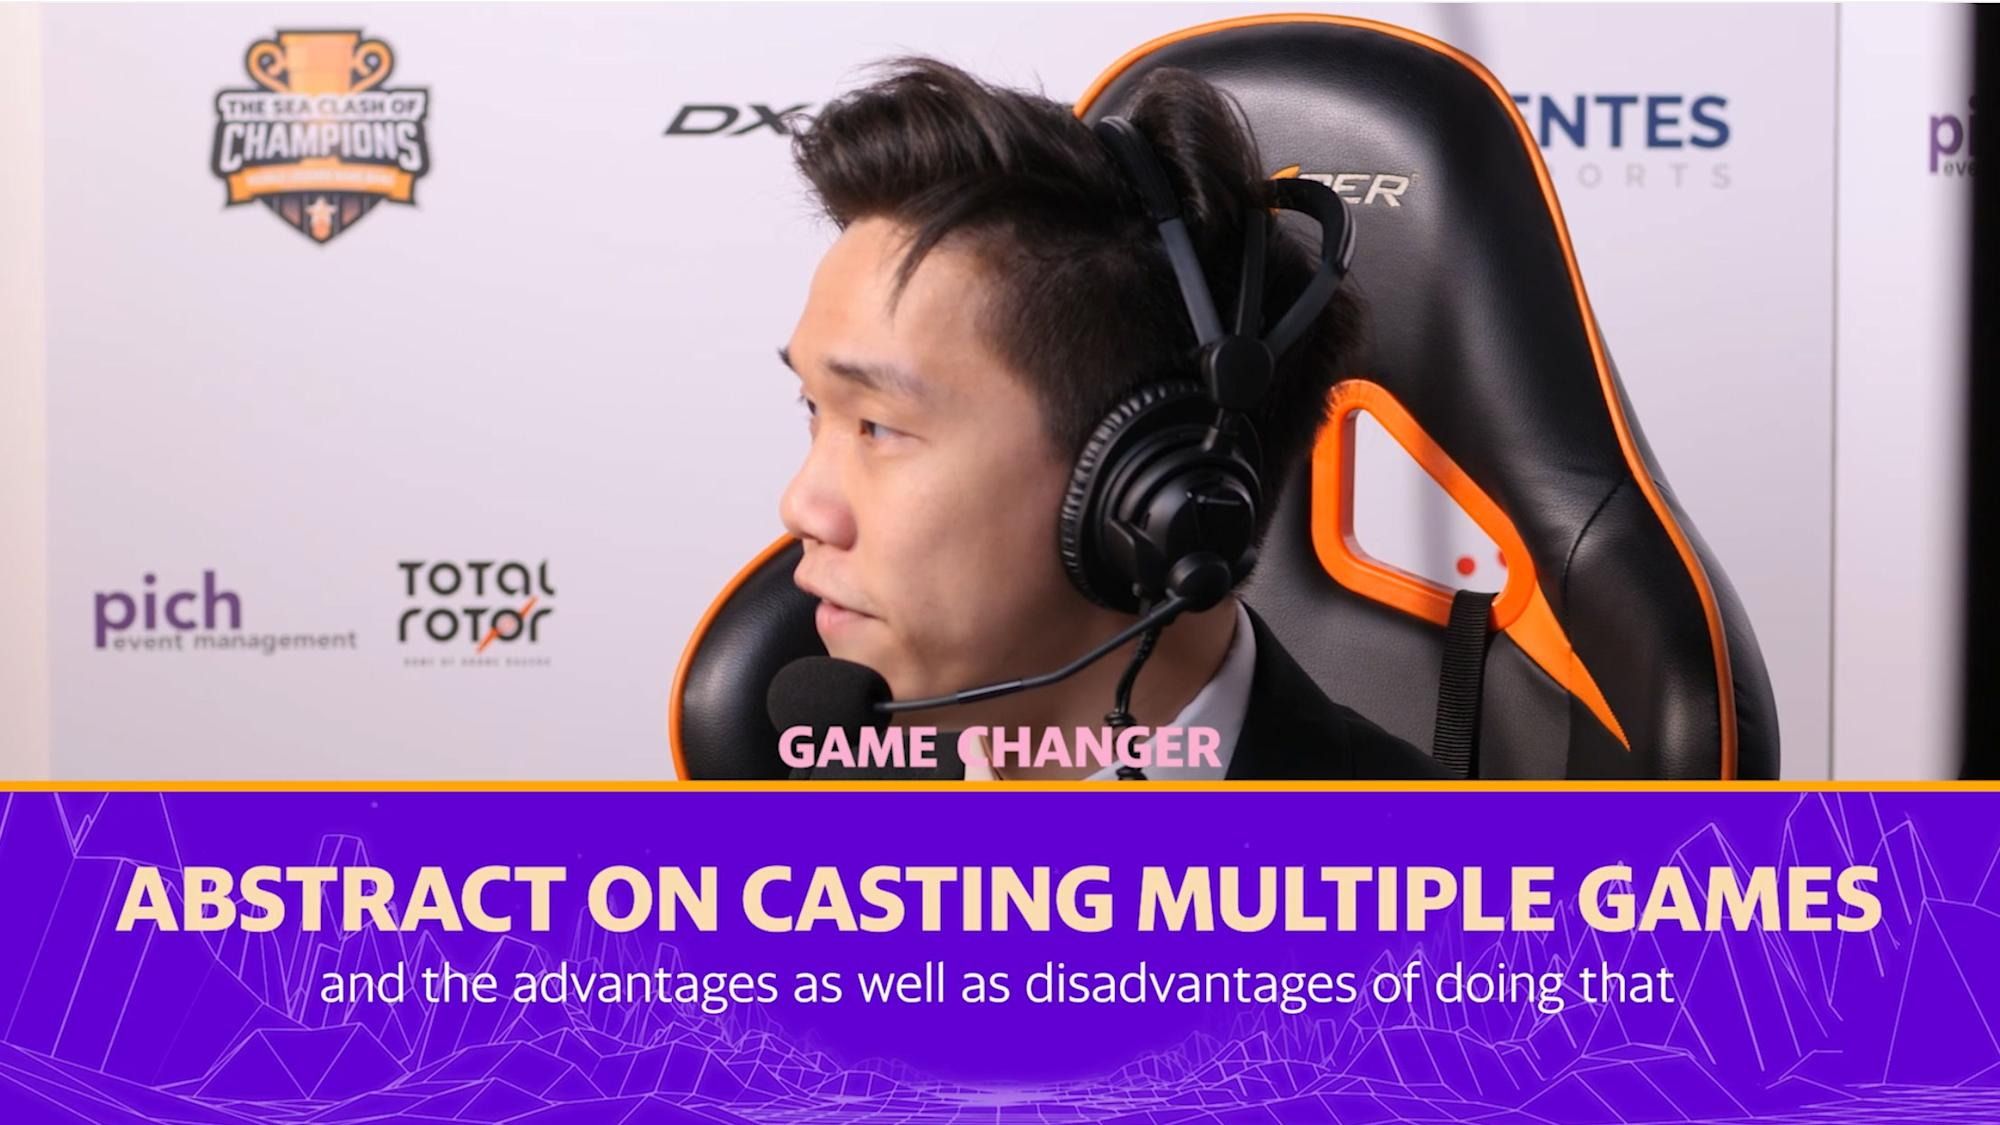 Abstract on casting multiple games - Game Changer Extra thumbnail